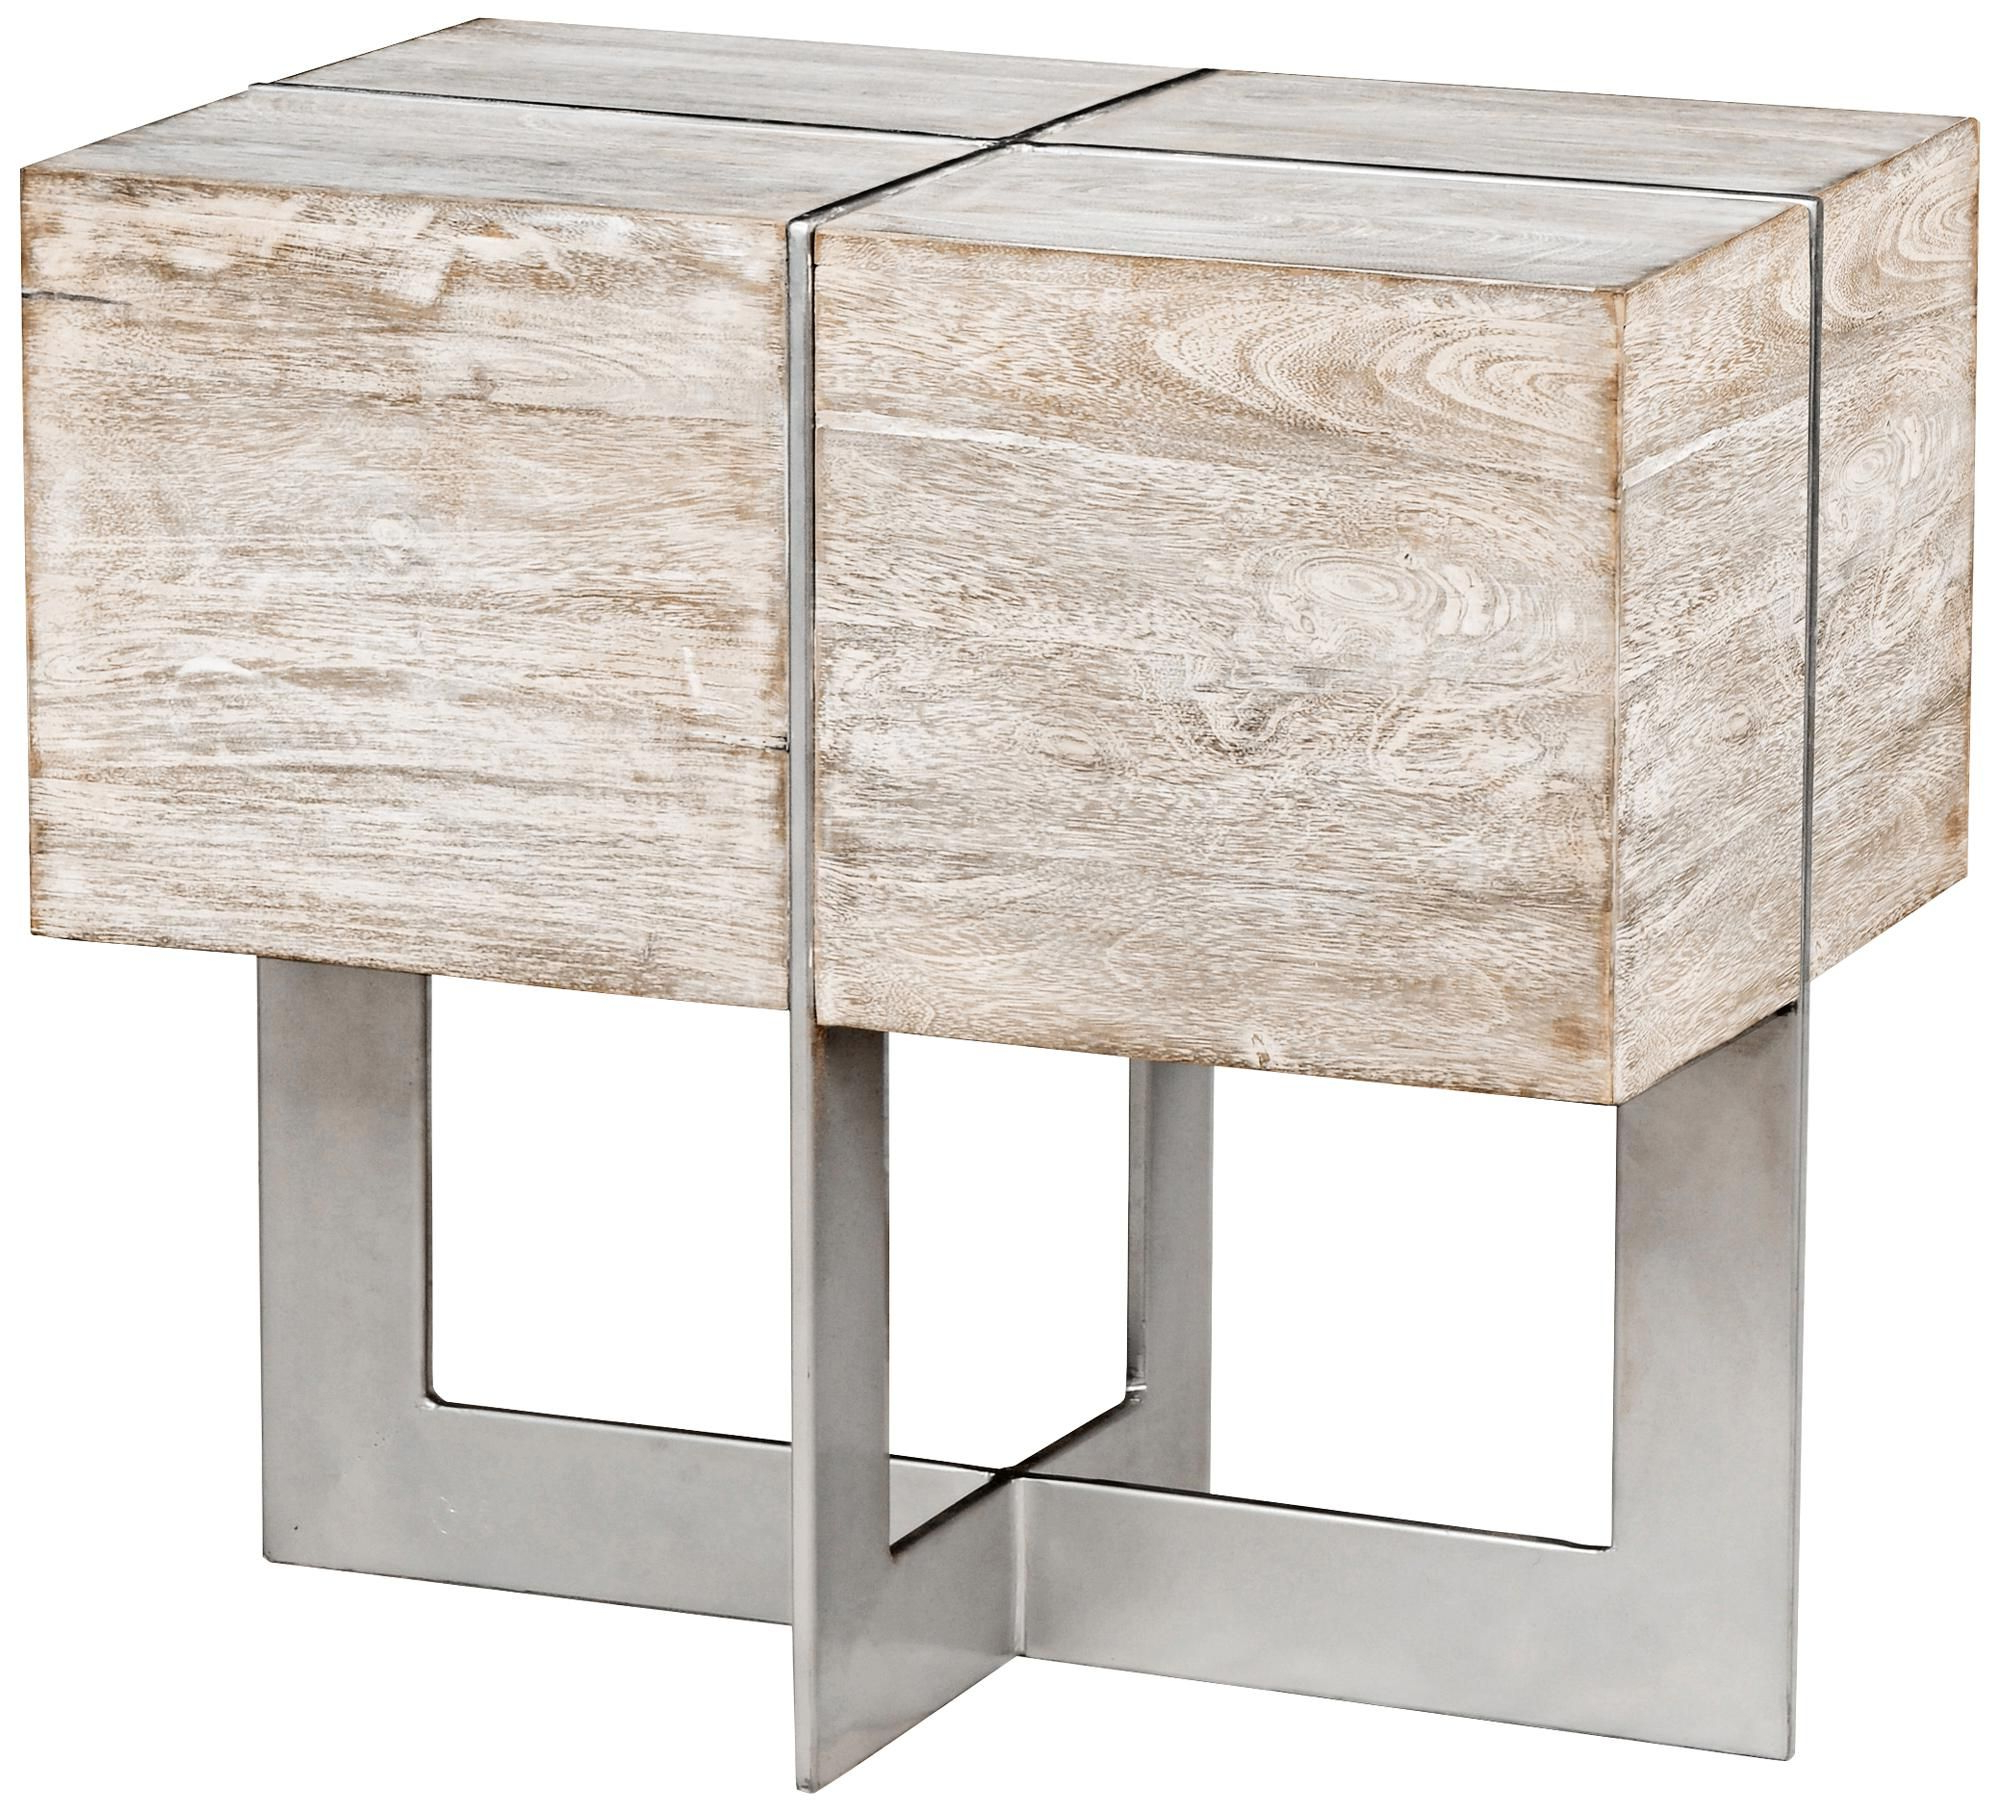 Desmond White Wash Solid Mango Wood Block End Table | Home Accents In Parsons Walnut Top & Dark Steel Base 48X16 Console Tables (View 5 of 20)